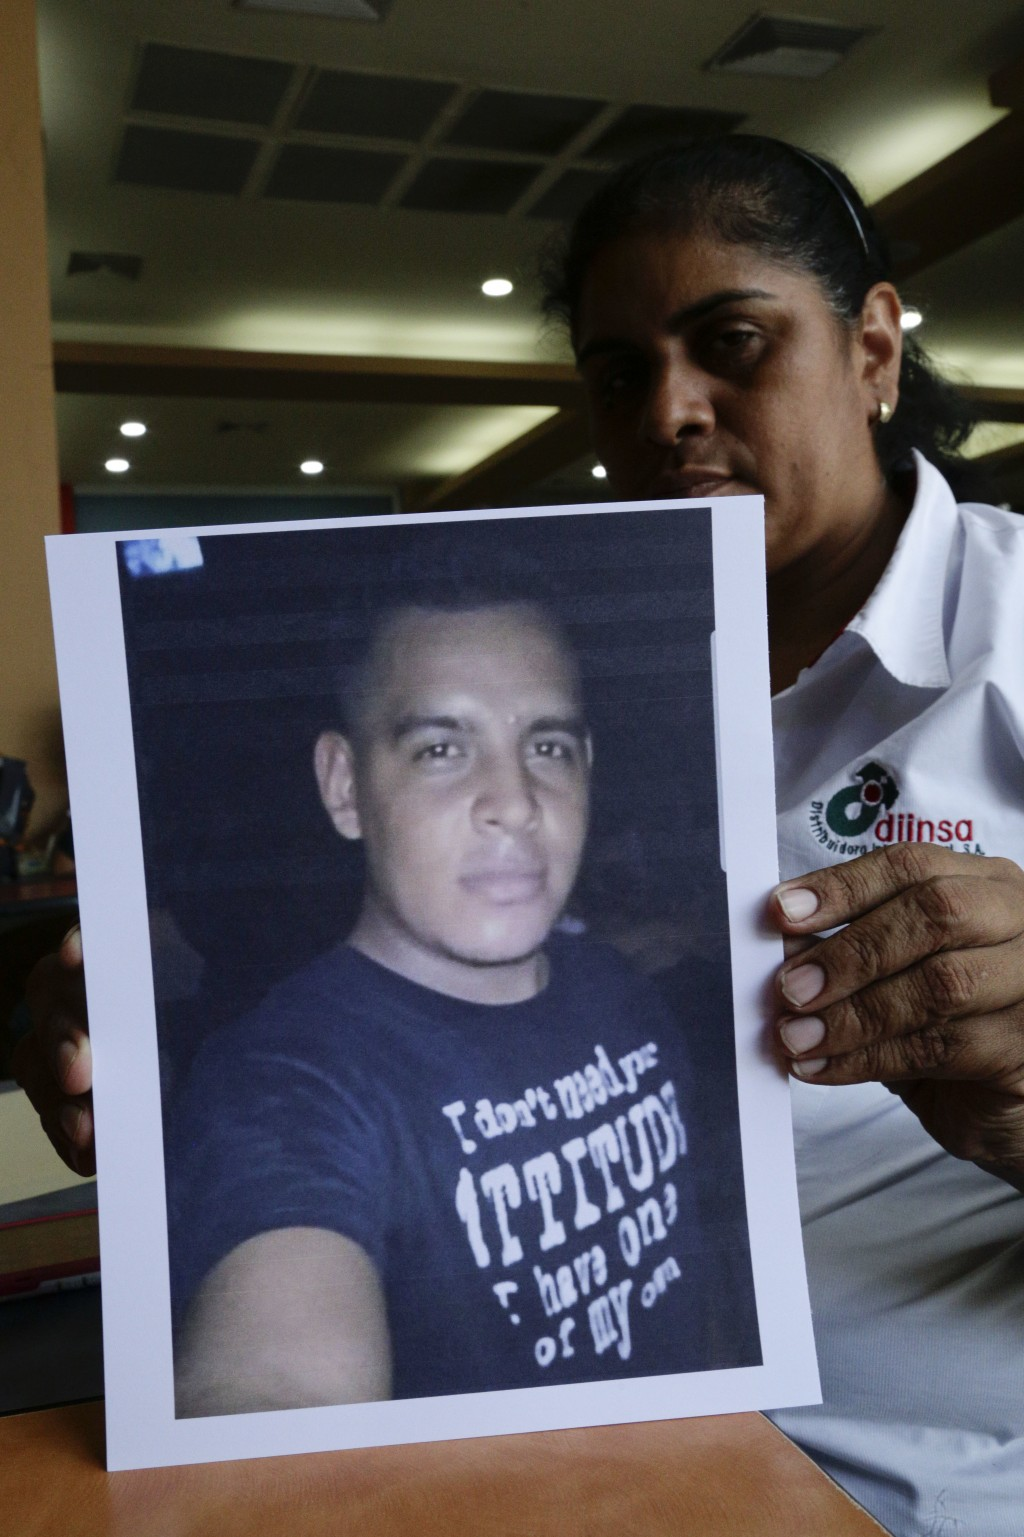 In this July 25, 2018 photo, Maria Jose Malespin shows a photograph of her missing son Lester Lenin Mayorga Malespin, who was detained at a police che